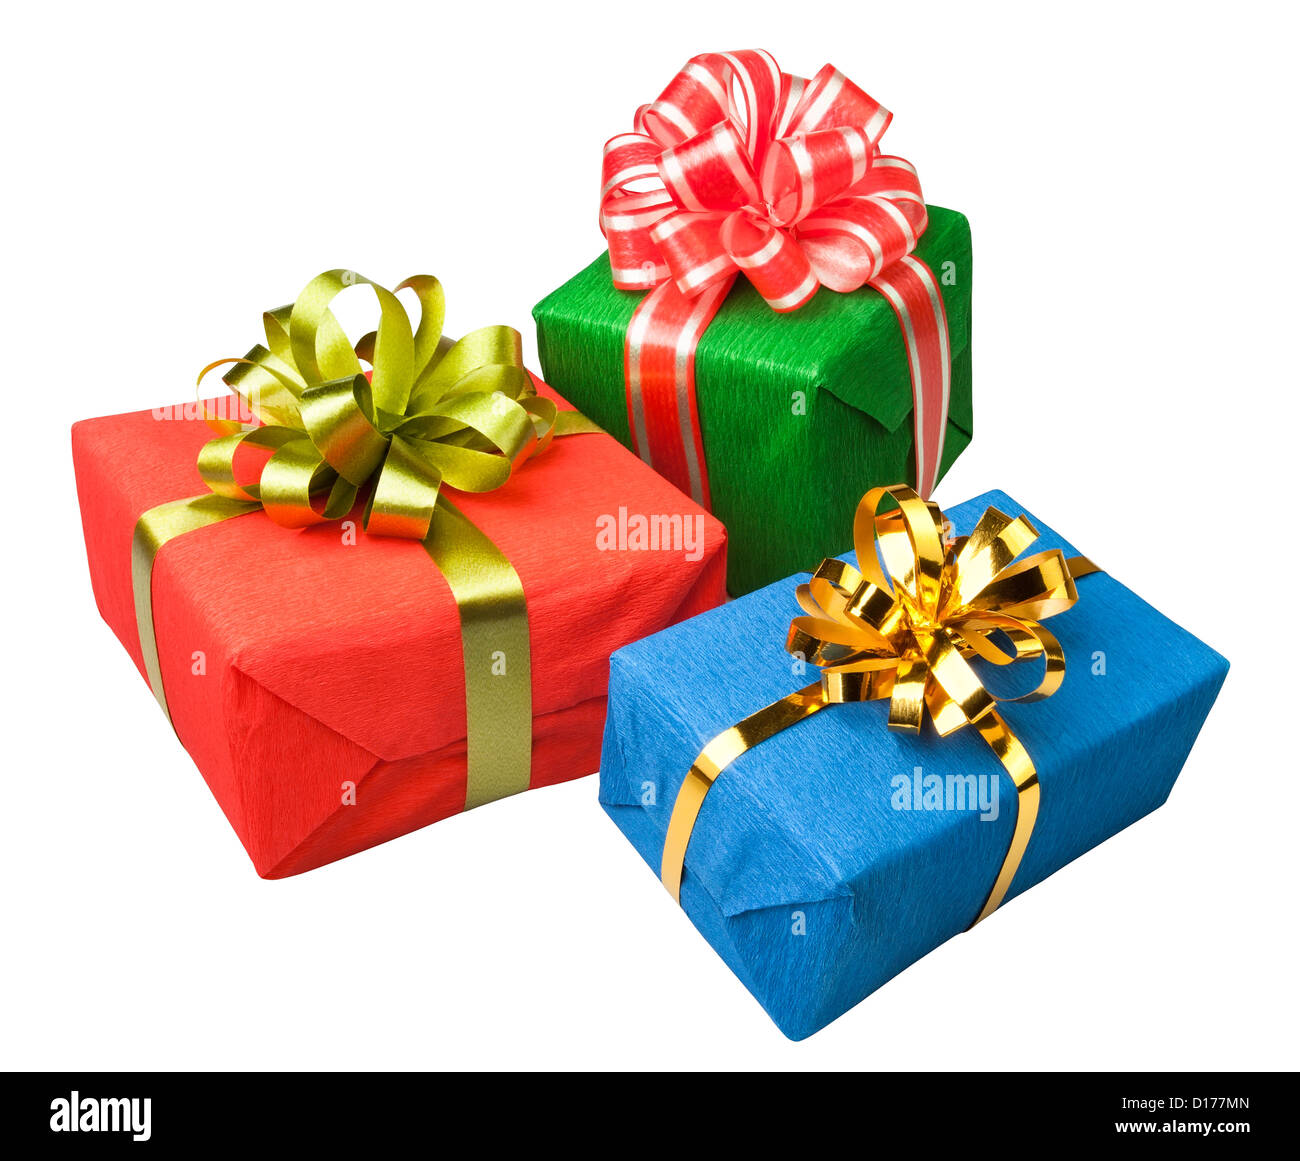 gifts boxes presents colorful on white background - Stock Image